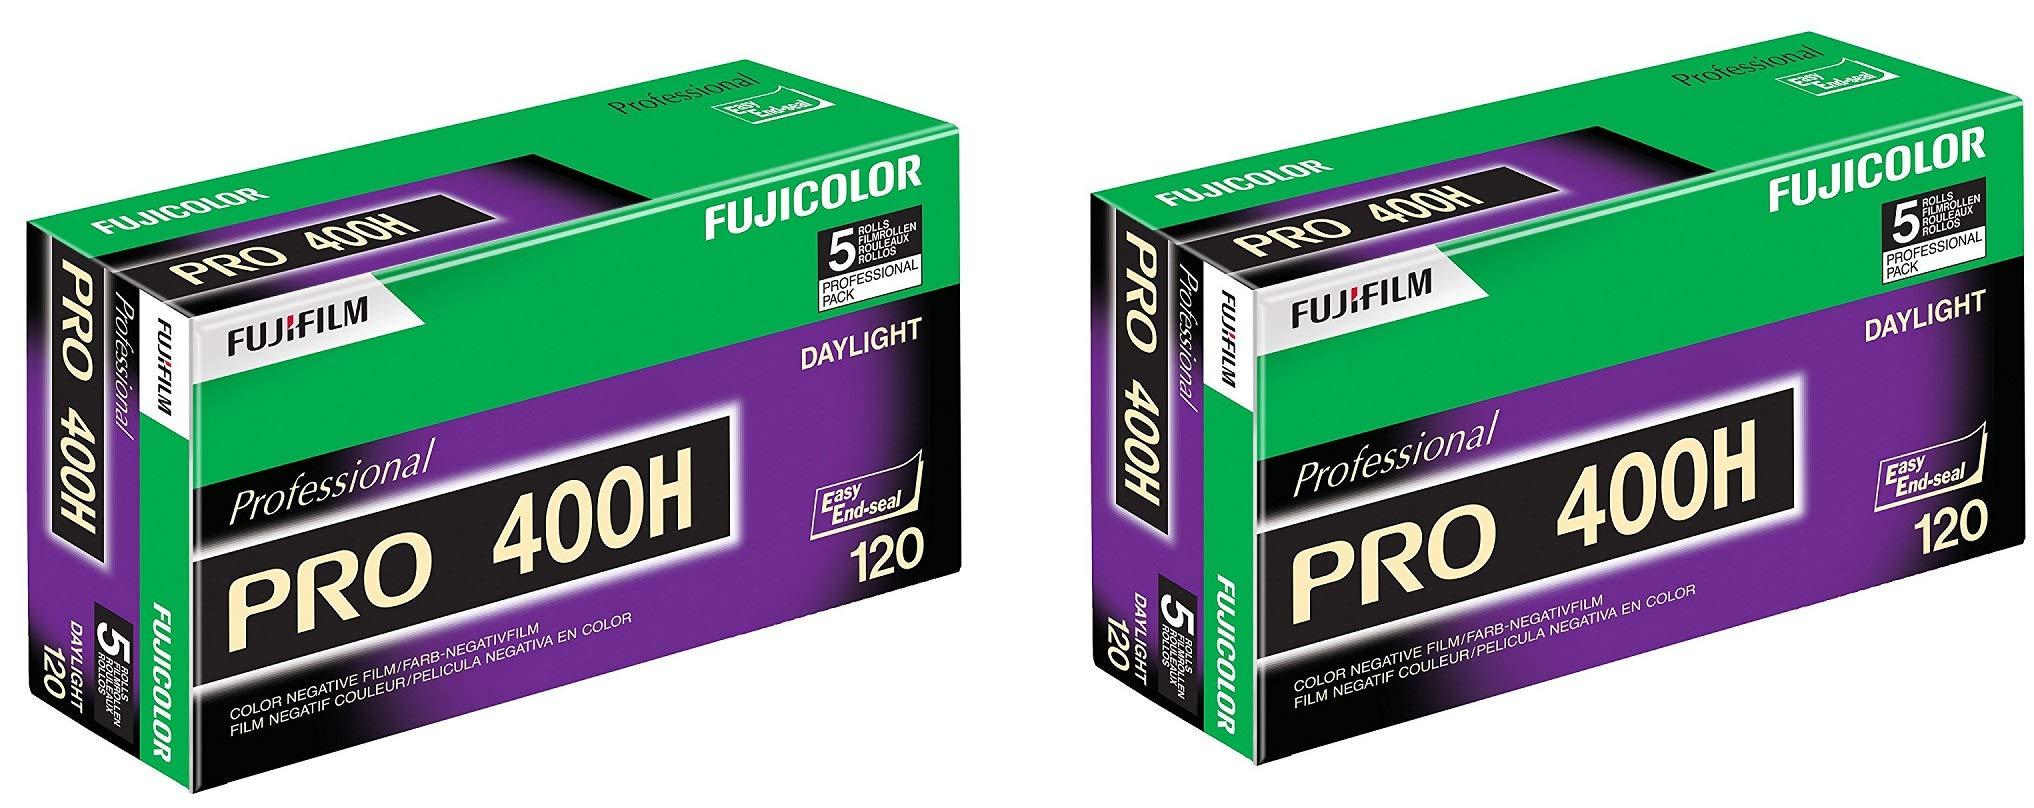 16326119 Fujicolor Pro 120, 400H Color Negative Film ISO 400-10 Roll Pro Pack (Green/White/Purple)